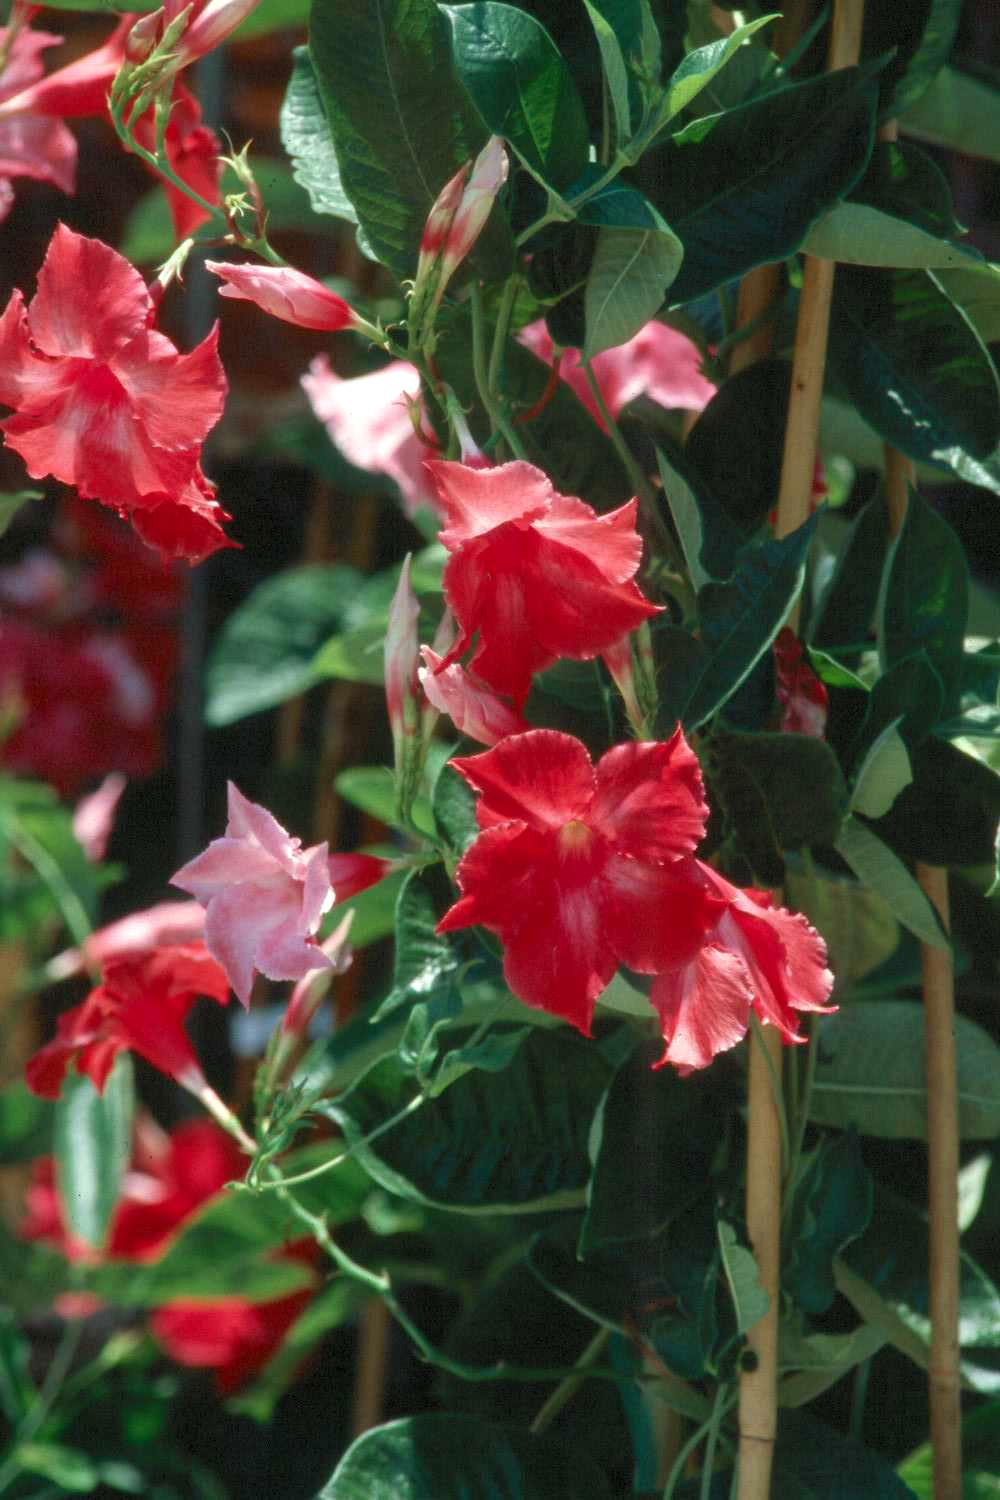 The Ruby Star features pointed petals and maintains its red color well .